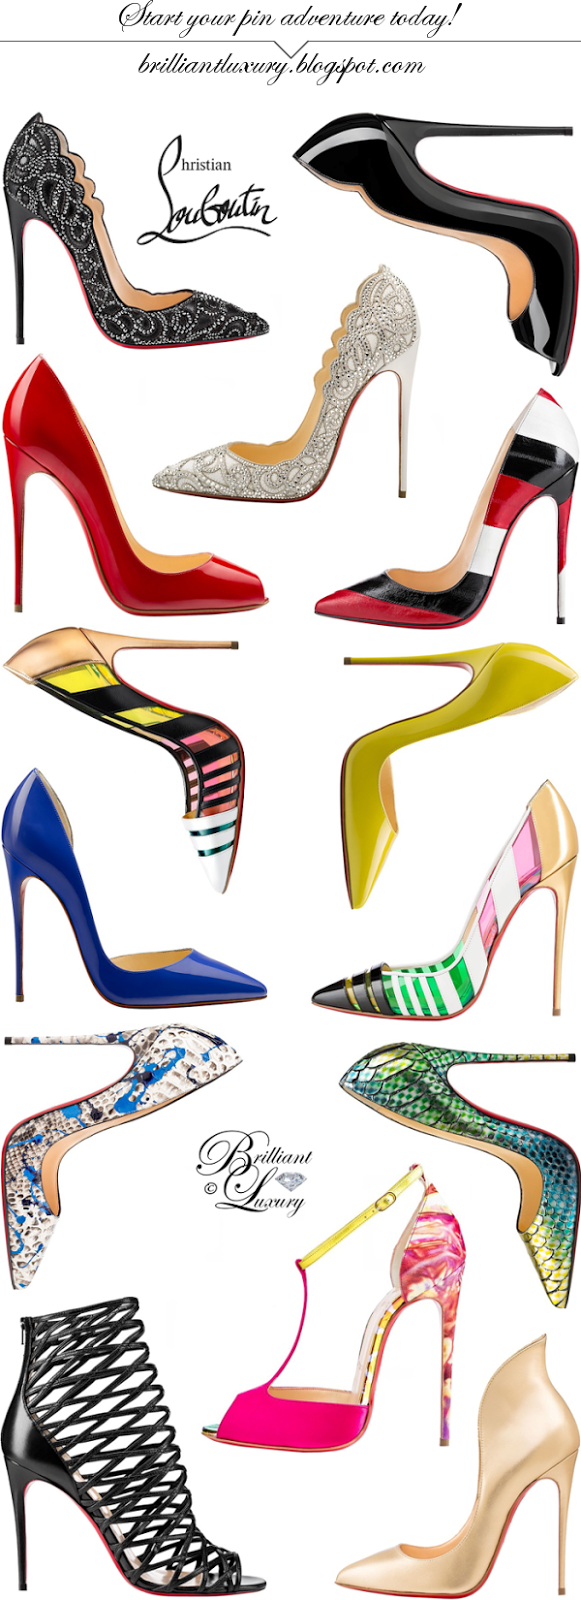 Brilliant Luxury ♦ Christian Louboutin Collection Spring 2015